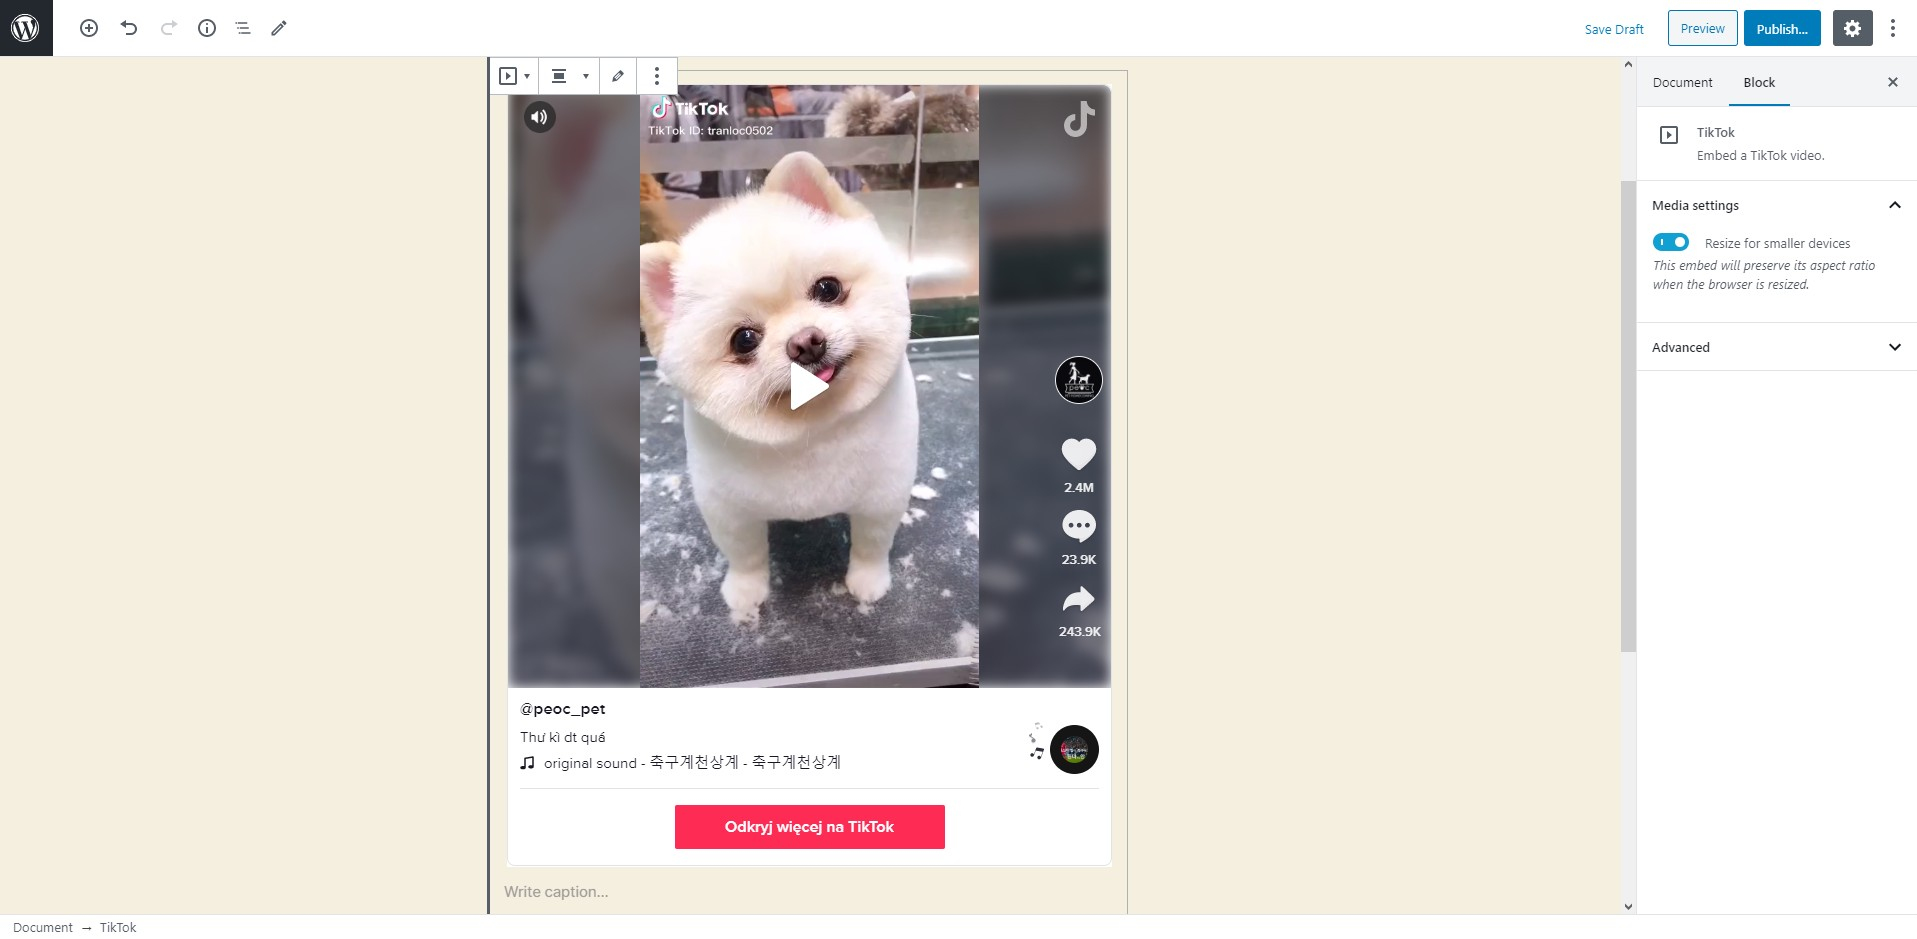 WordPress 5.4 will introduce an option to embed TikTok videos into your posts.